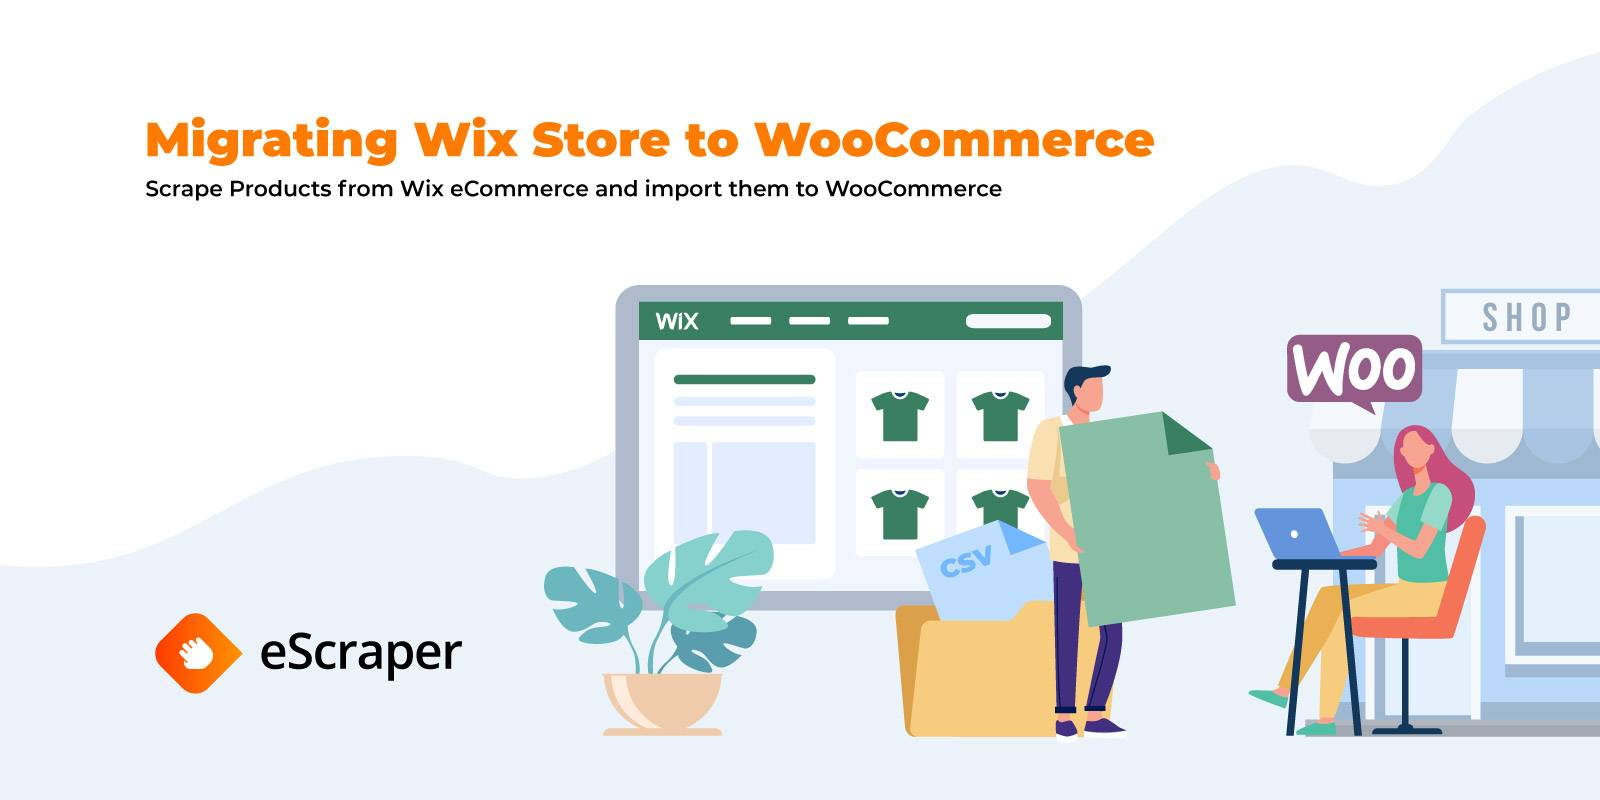 Migrating from a Wix Store to WooCommerce